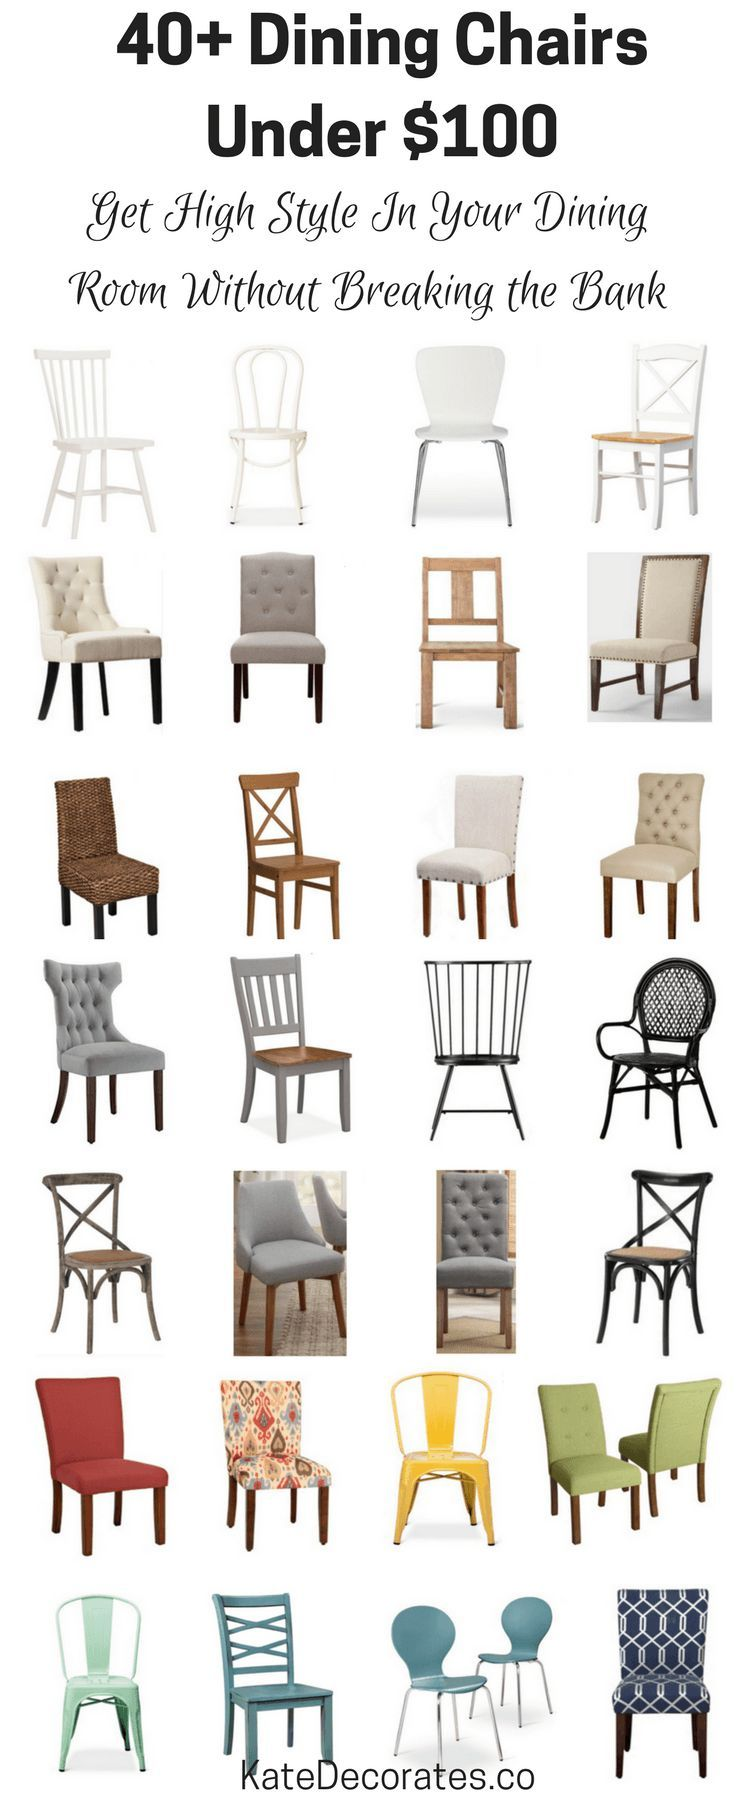 40 Affordable Dining Chairs Under $100  Dining Chairs Kitchens Stunning Living Room Chairs Under 100 Design Inspiration